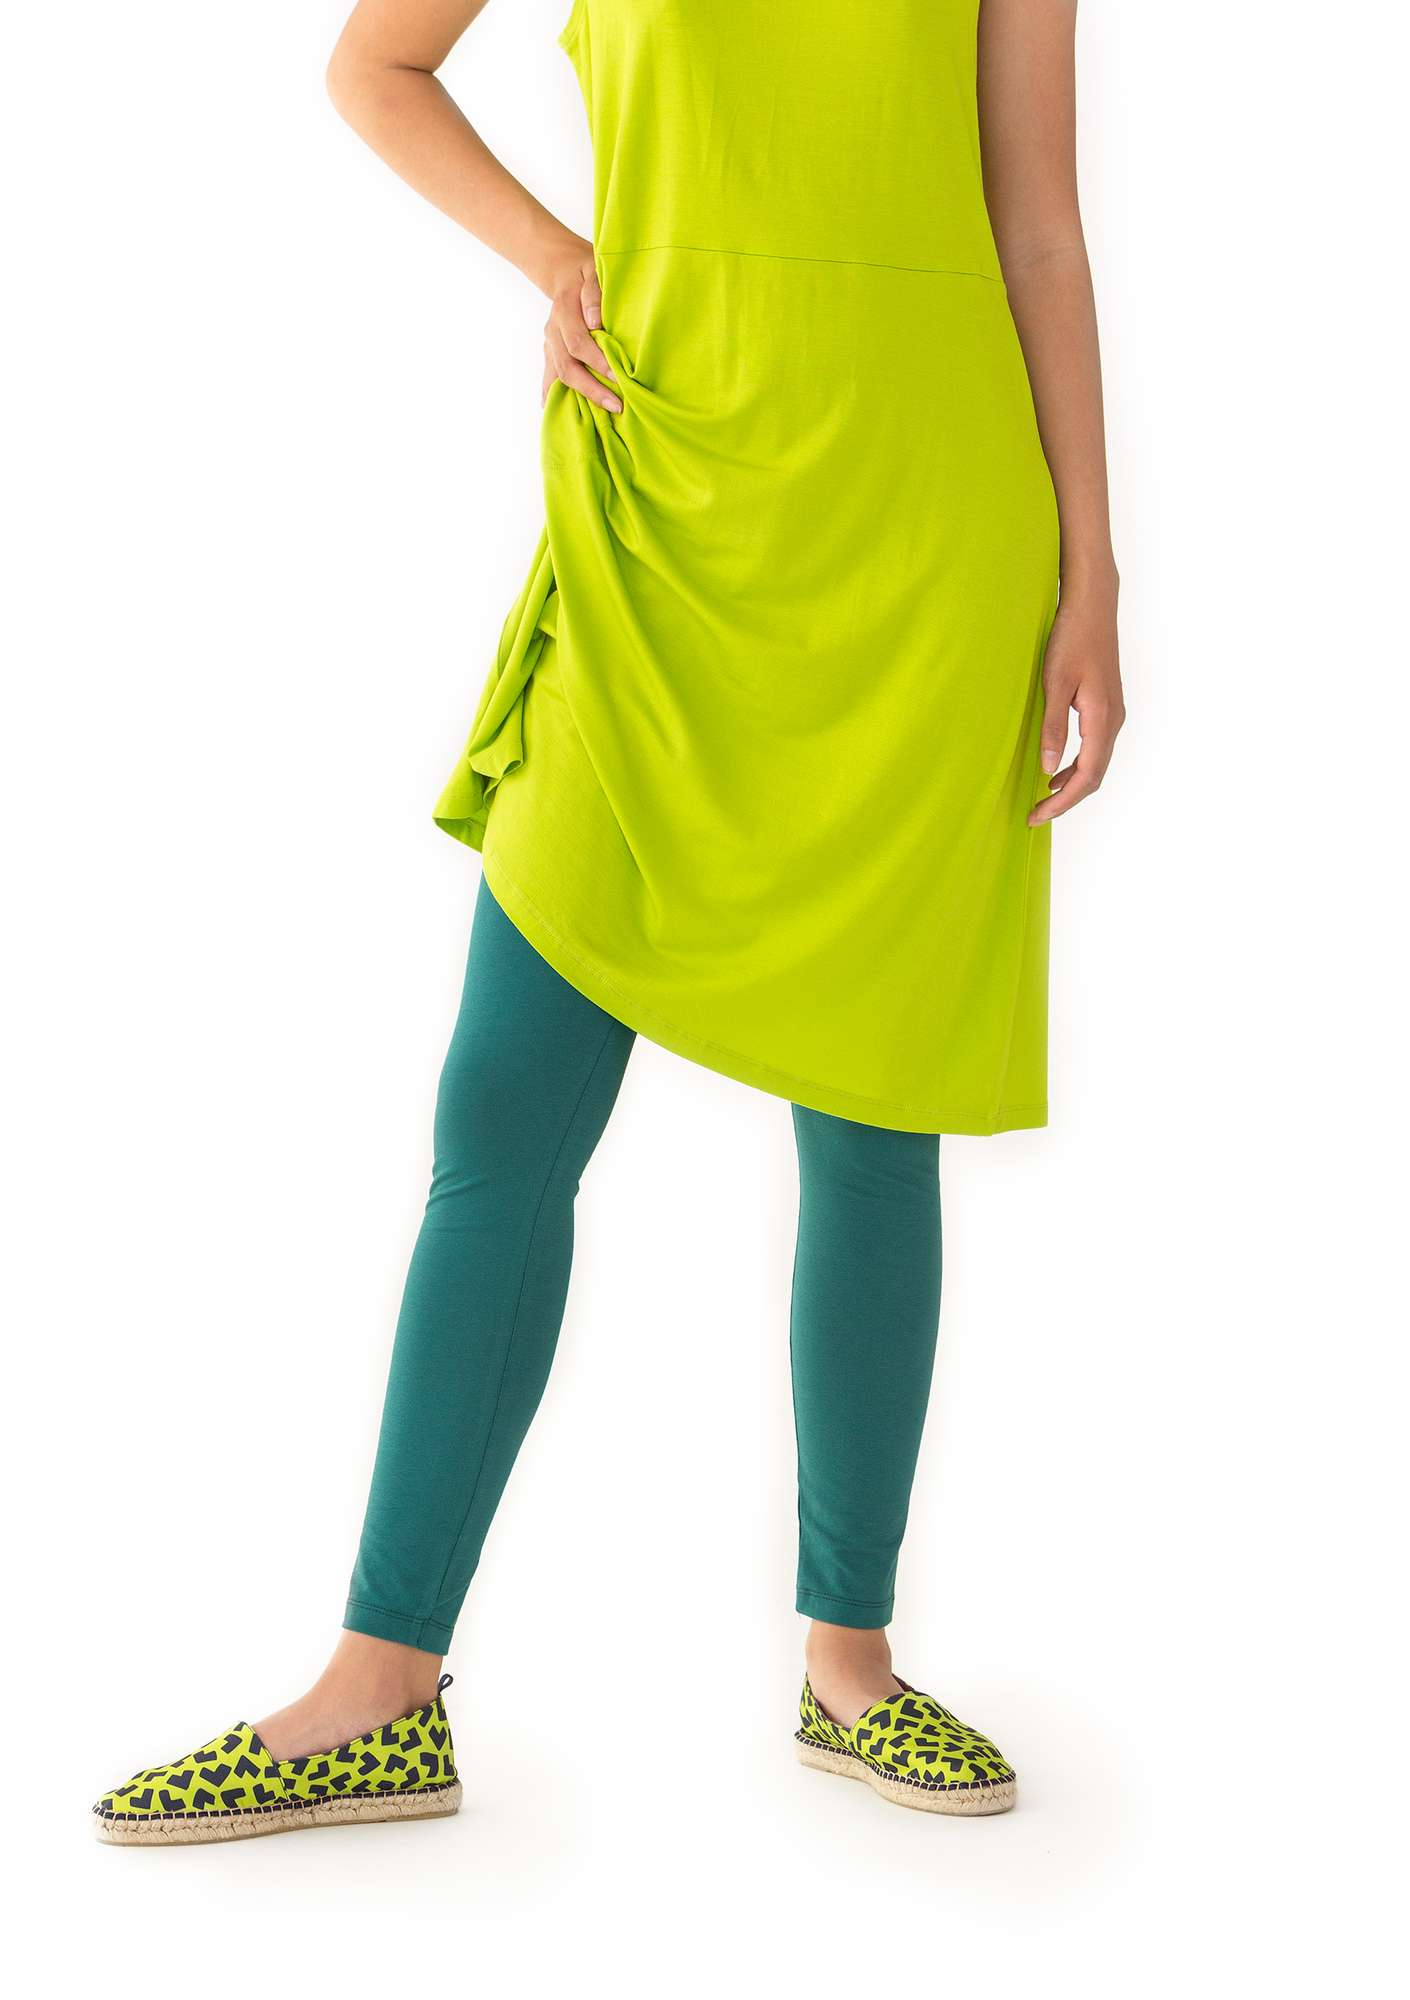 Solid-colour leggings peacock green